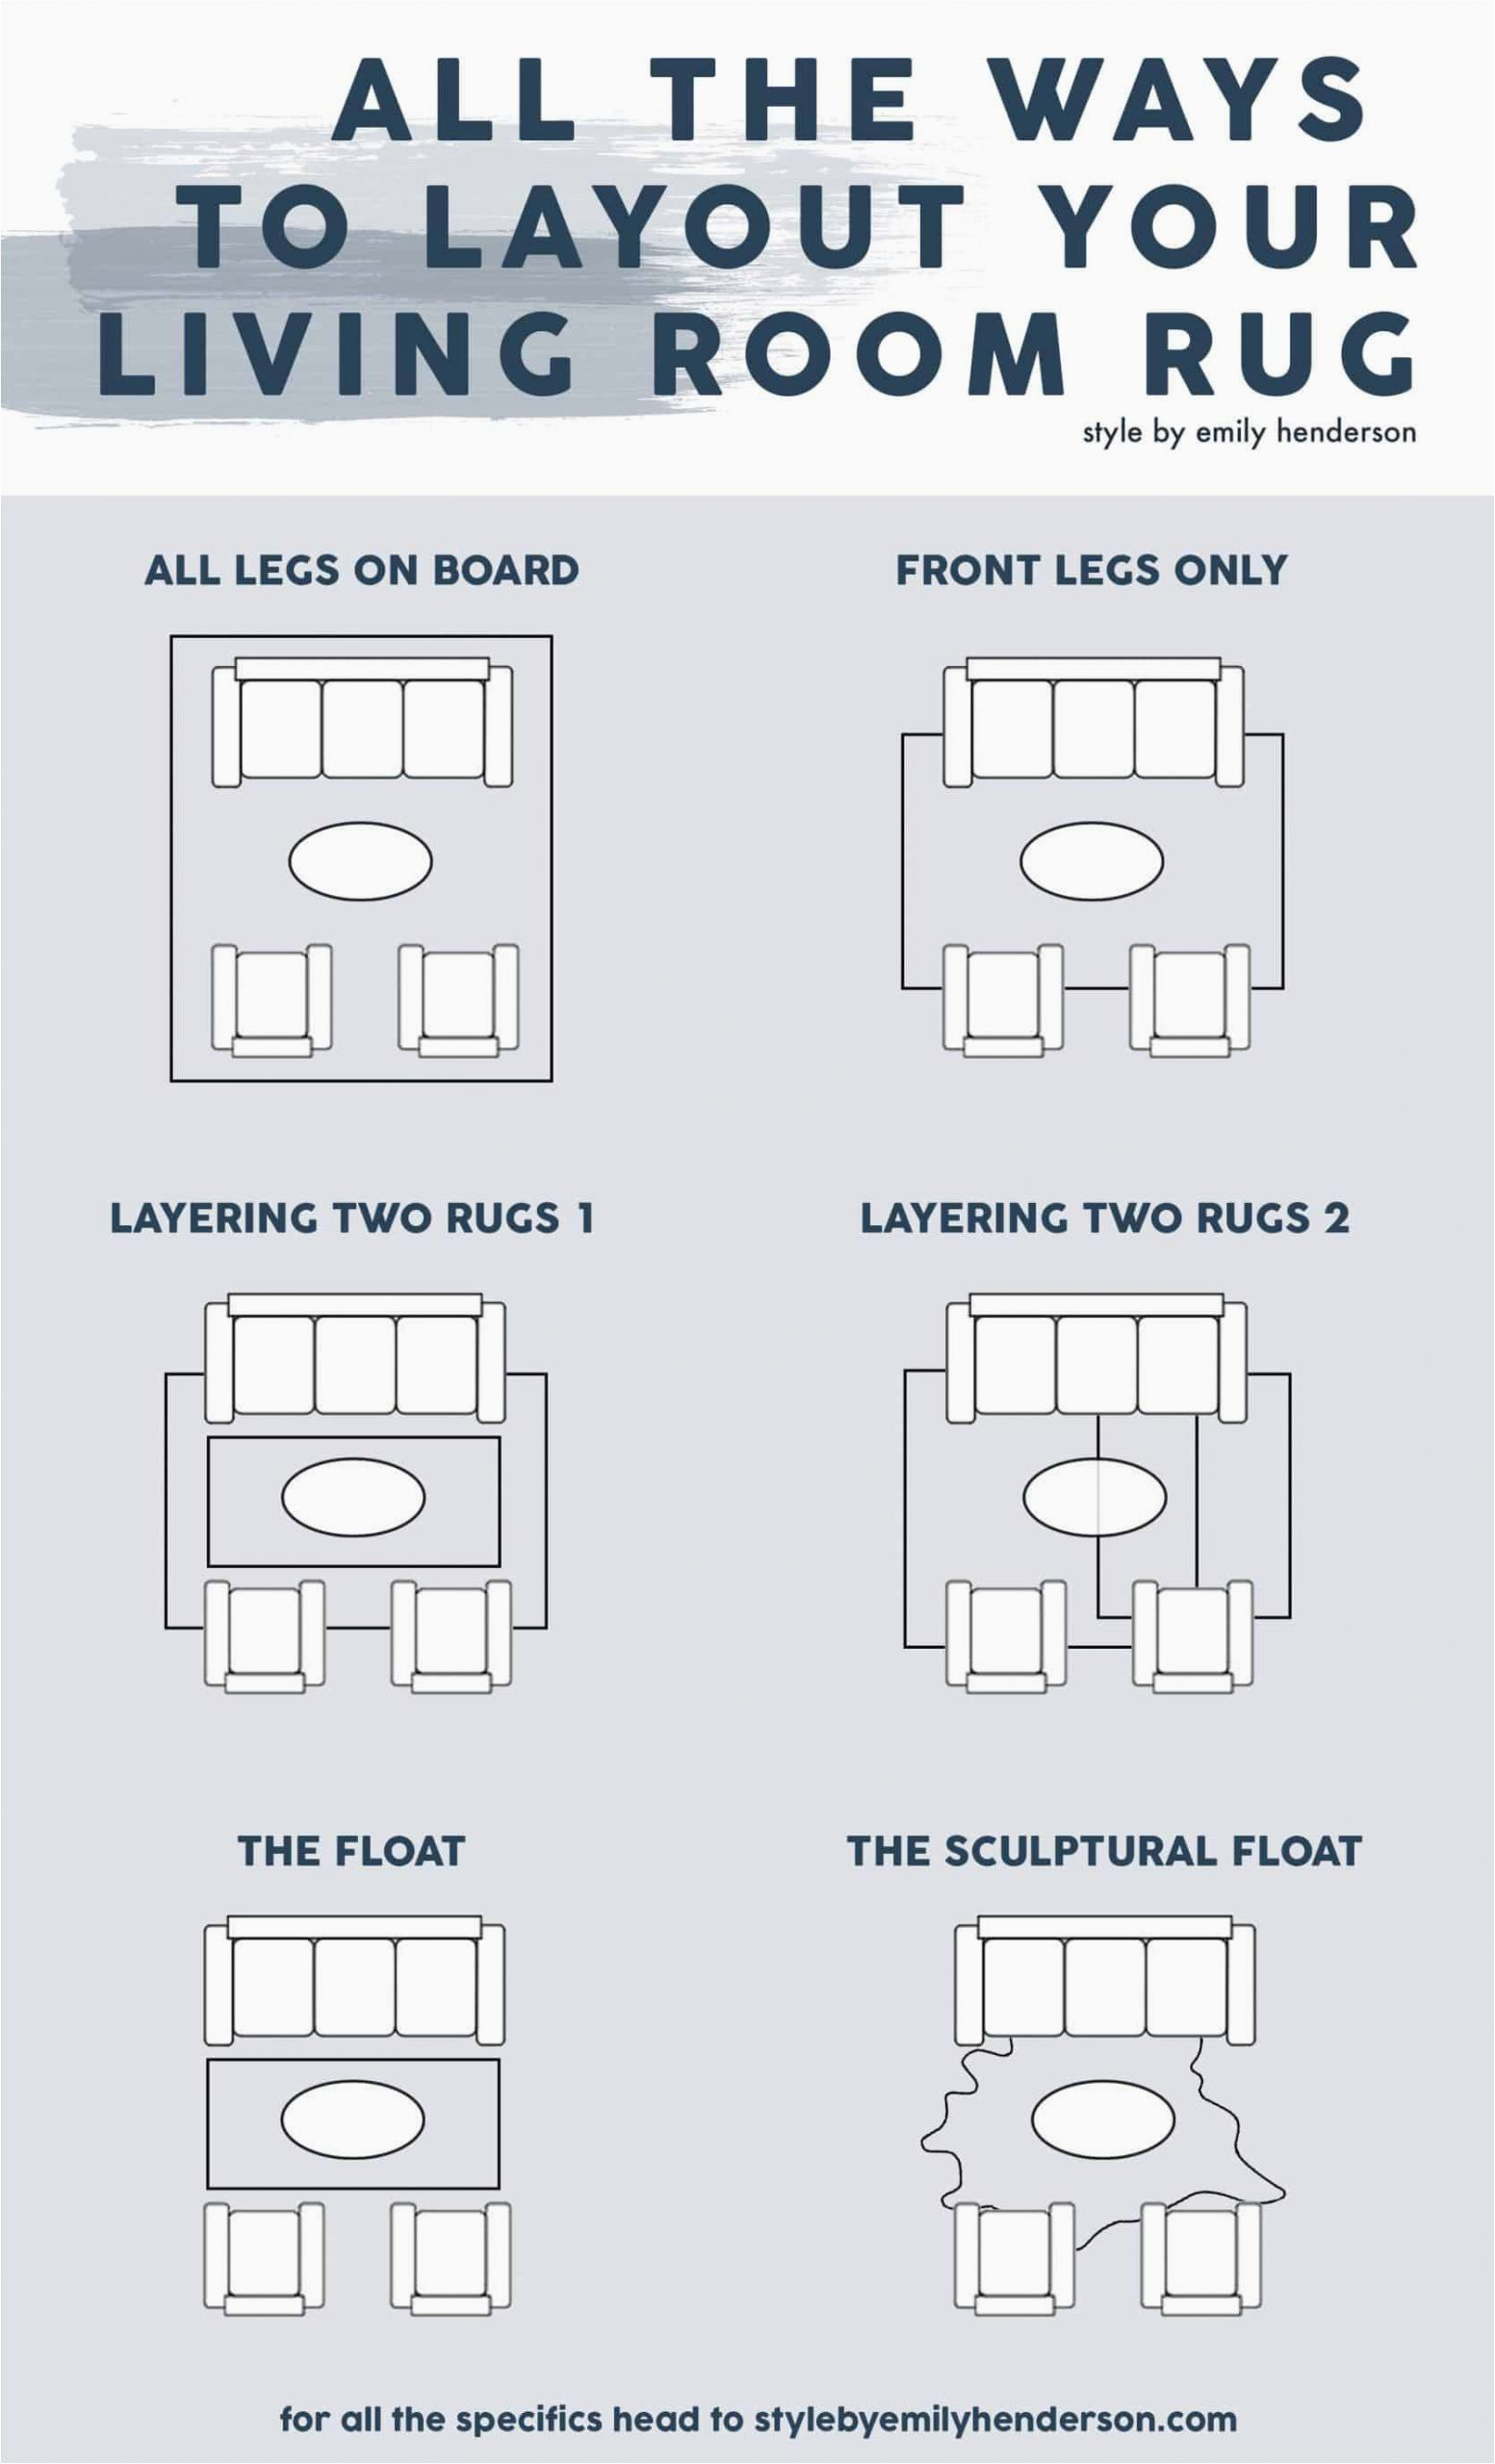 Best area Rug Size for Small Living Room How to Choose the Right Rug Size for Your Living Room 5